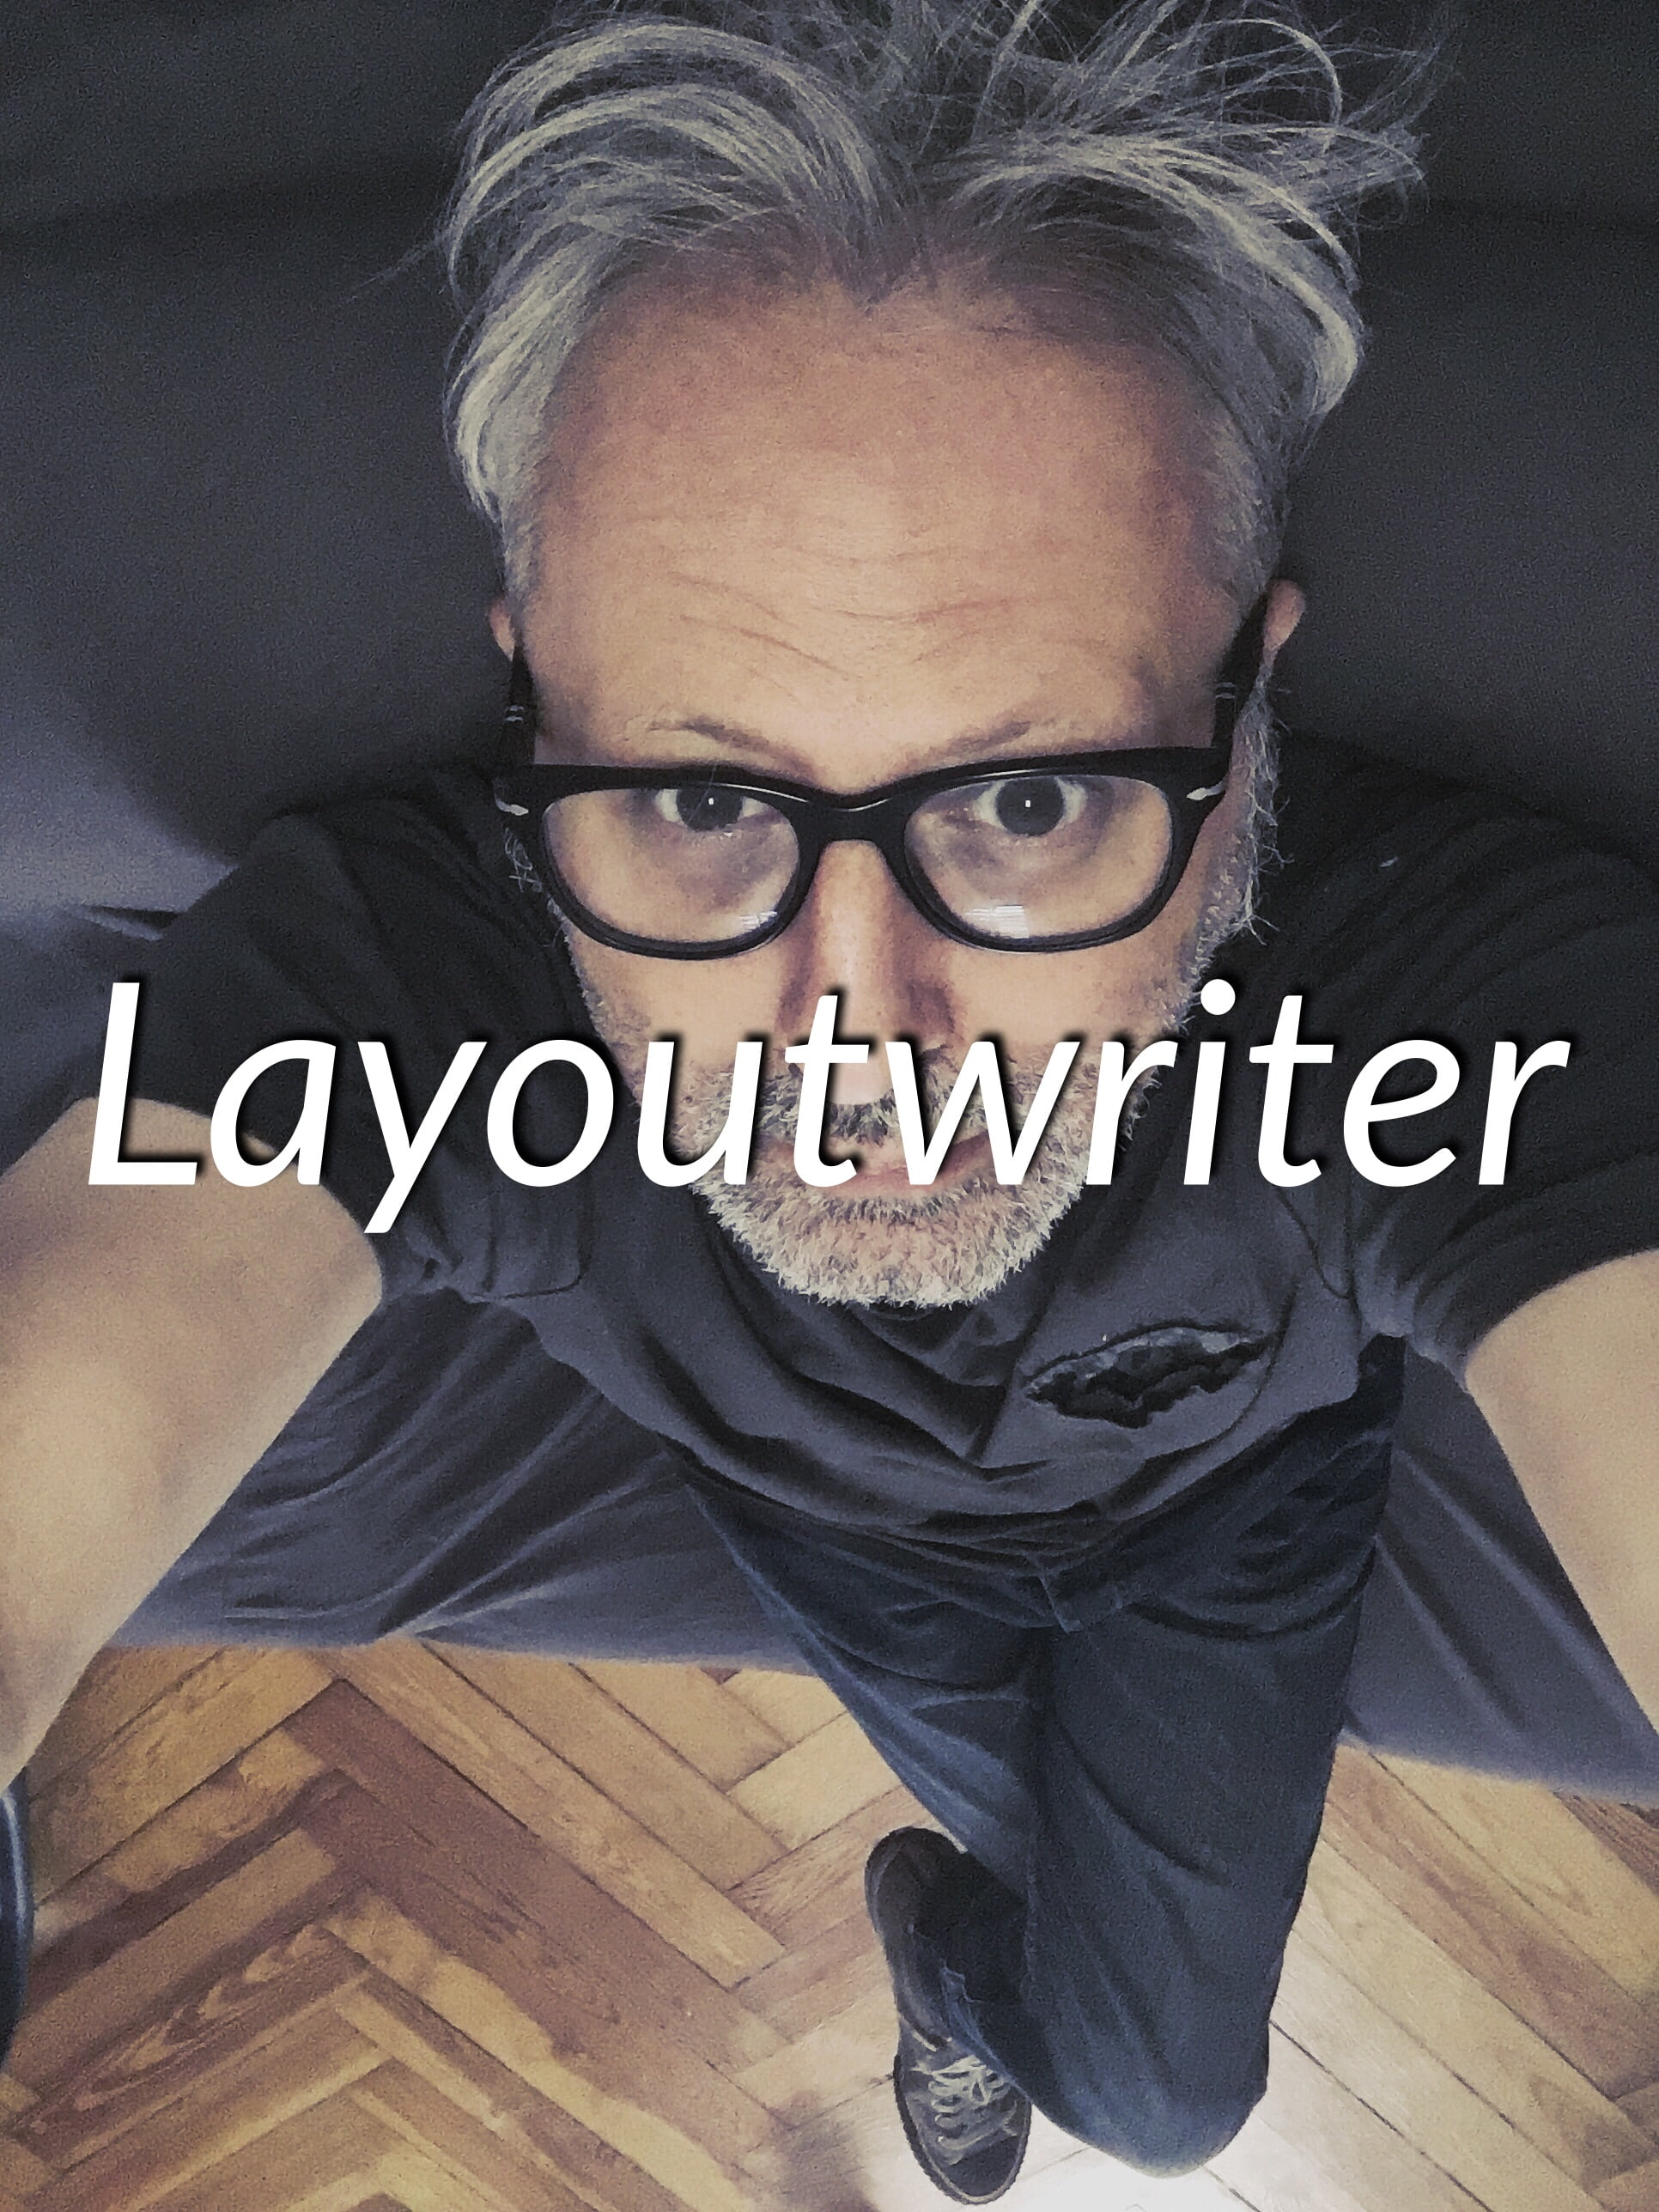 Layoutwriter